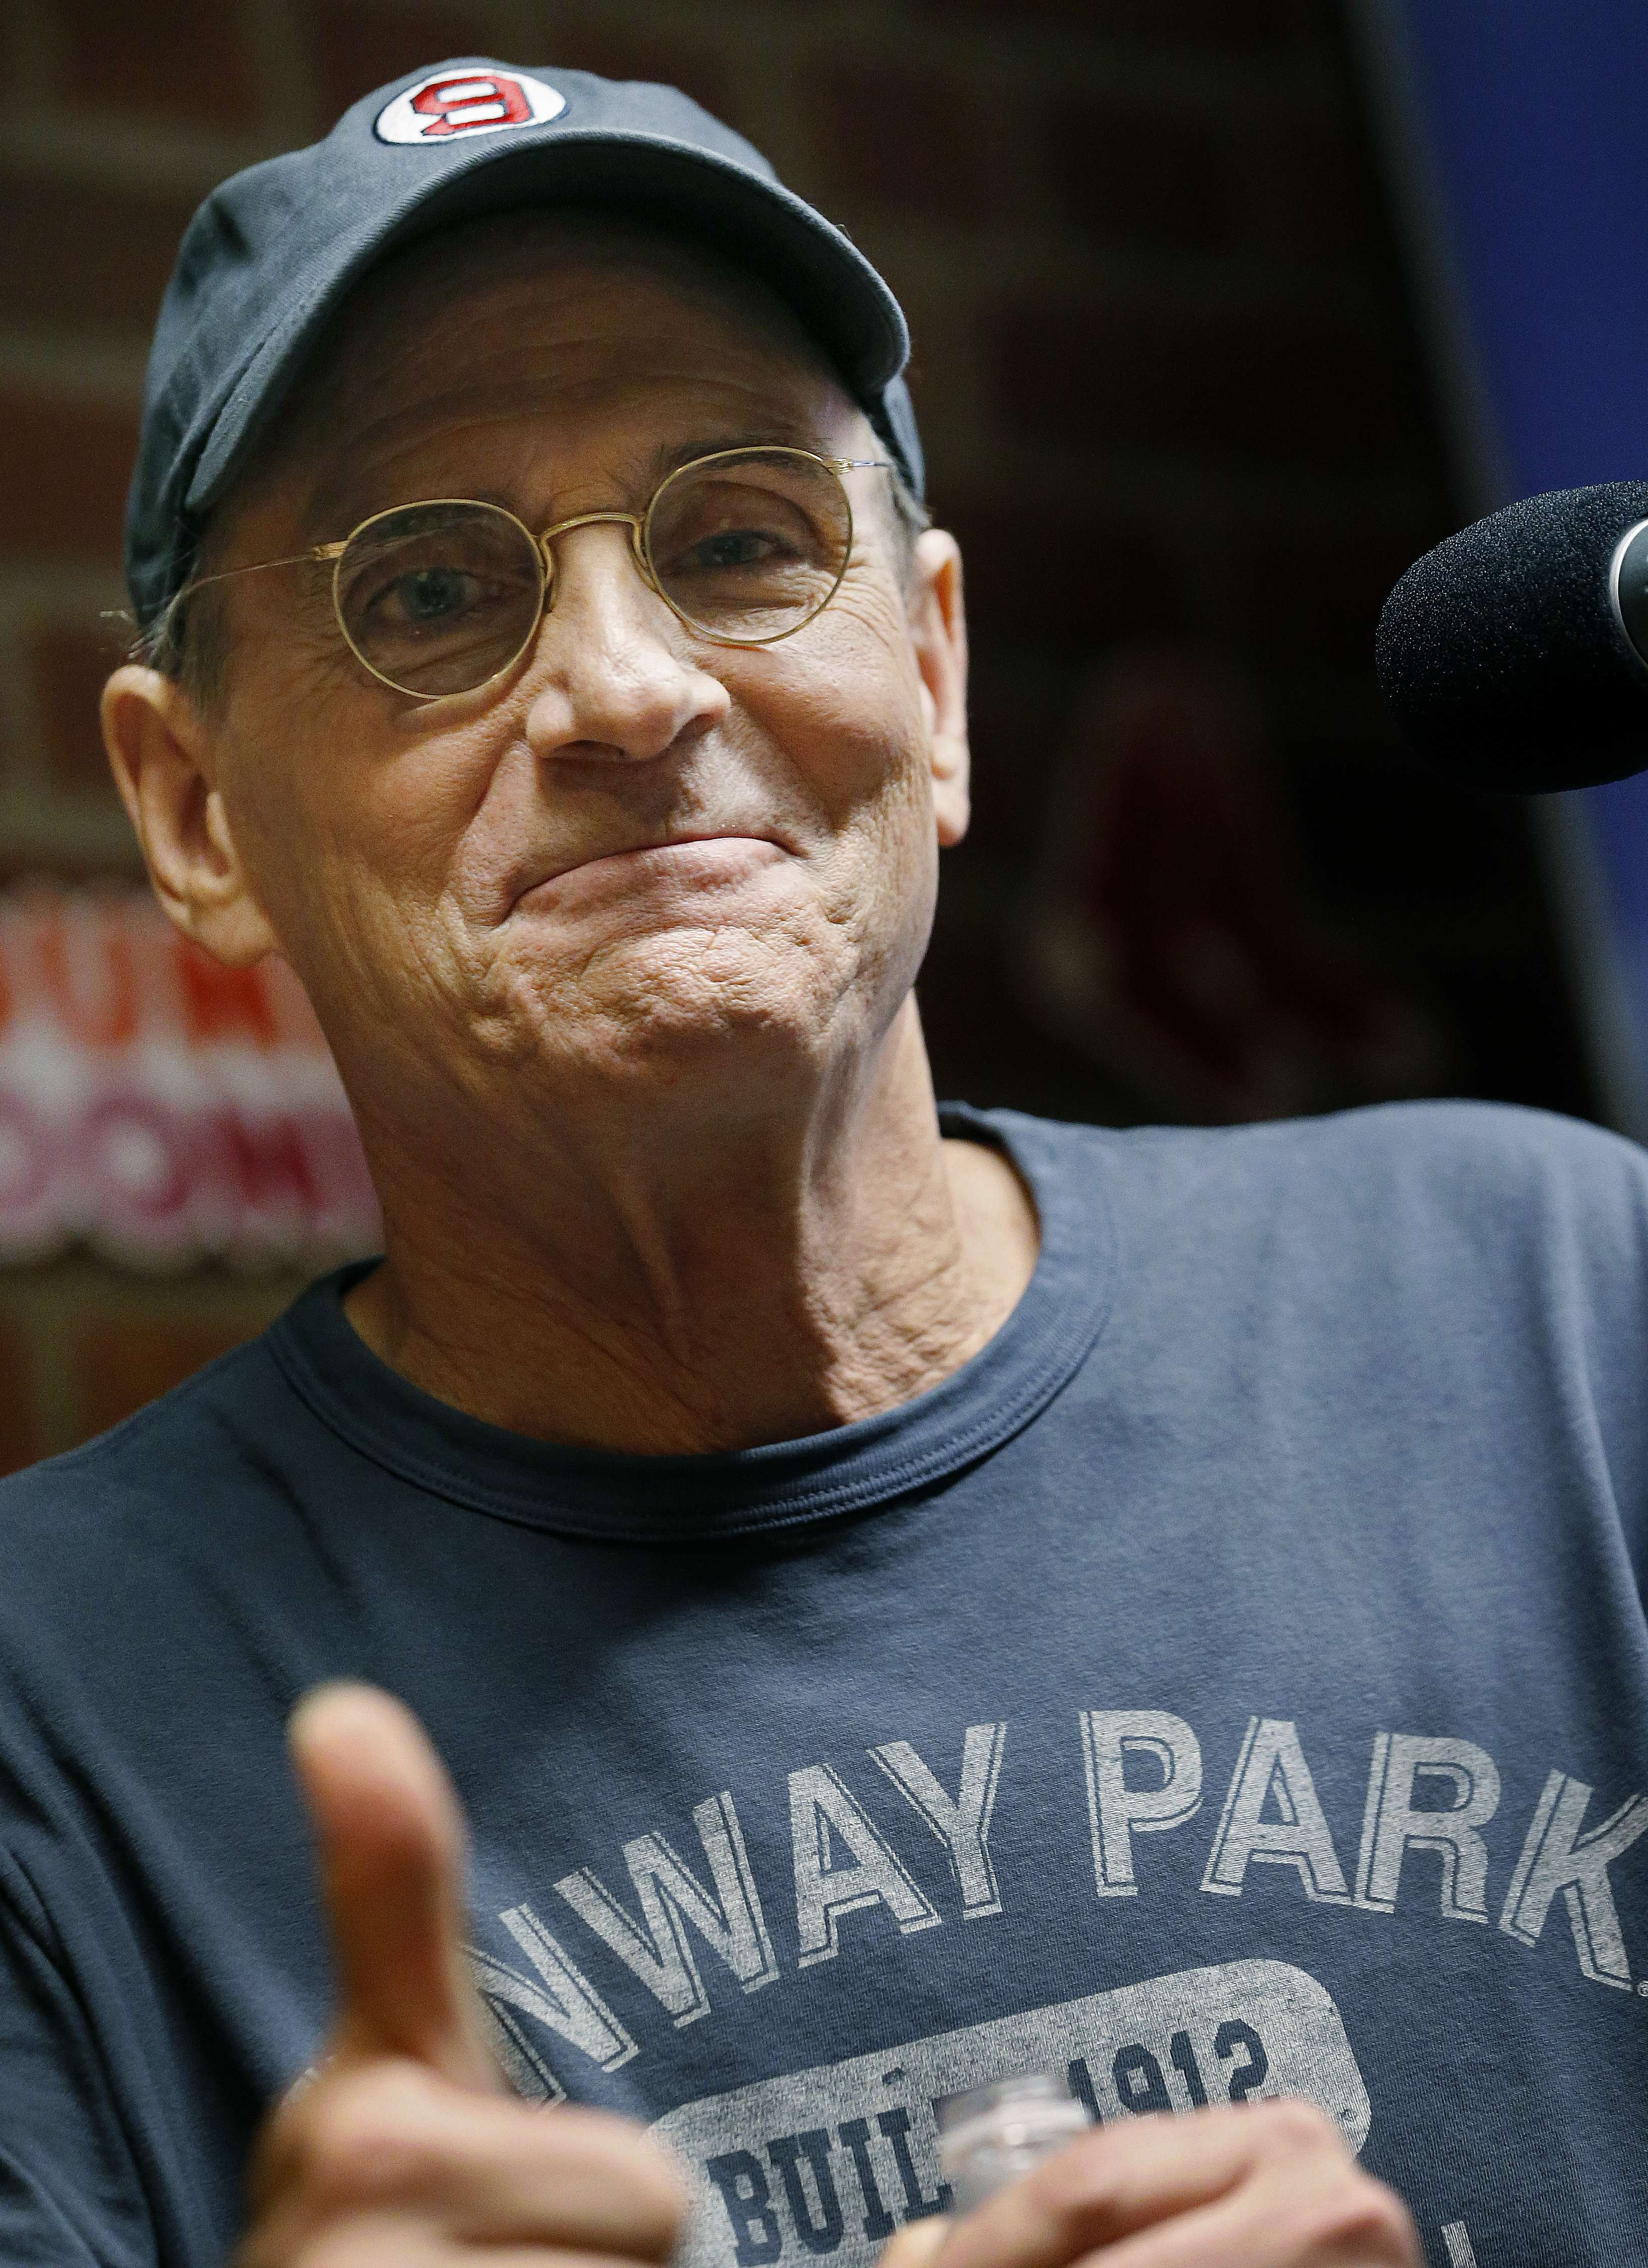 """James Taylor gives a thumbs-up during a news conference to promote his new song """"Angels of Fenway"""" about the Boston Red Sox before a baseball game between the Red Sox and the New York Yankees in Boston, Sunday, May 3, 2015. (AP Photo/Michael Dwyer)"""